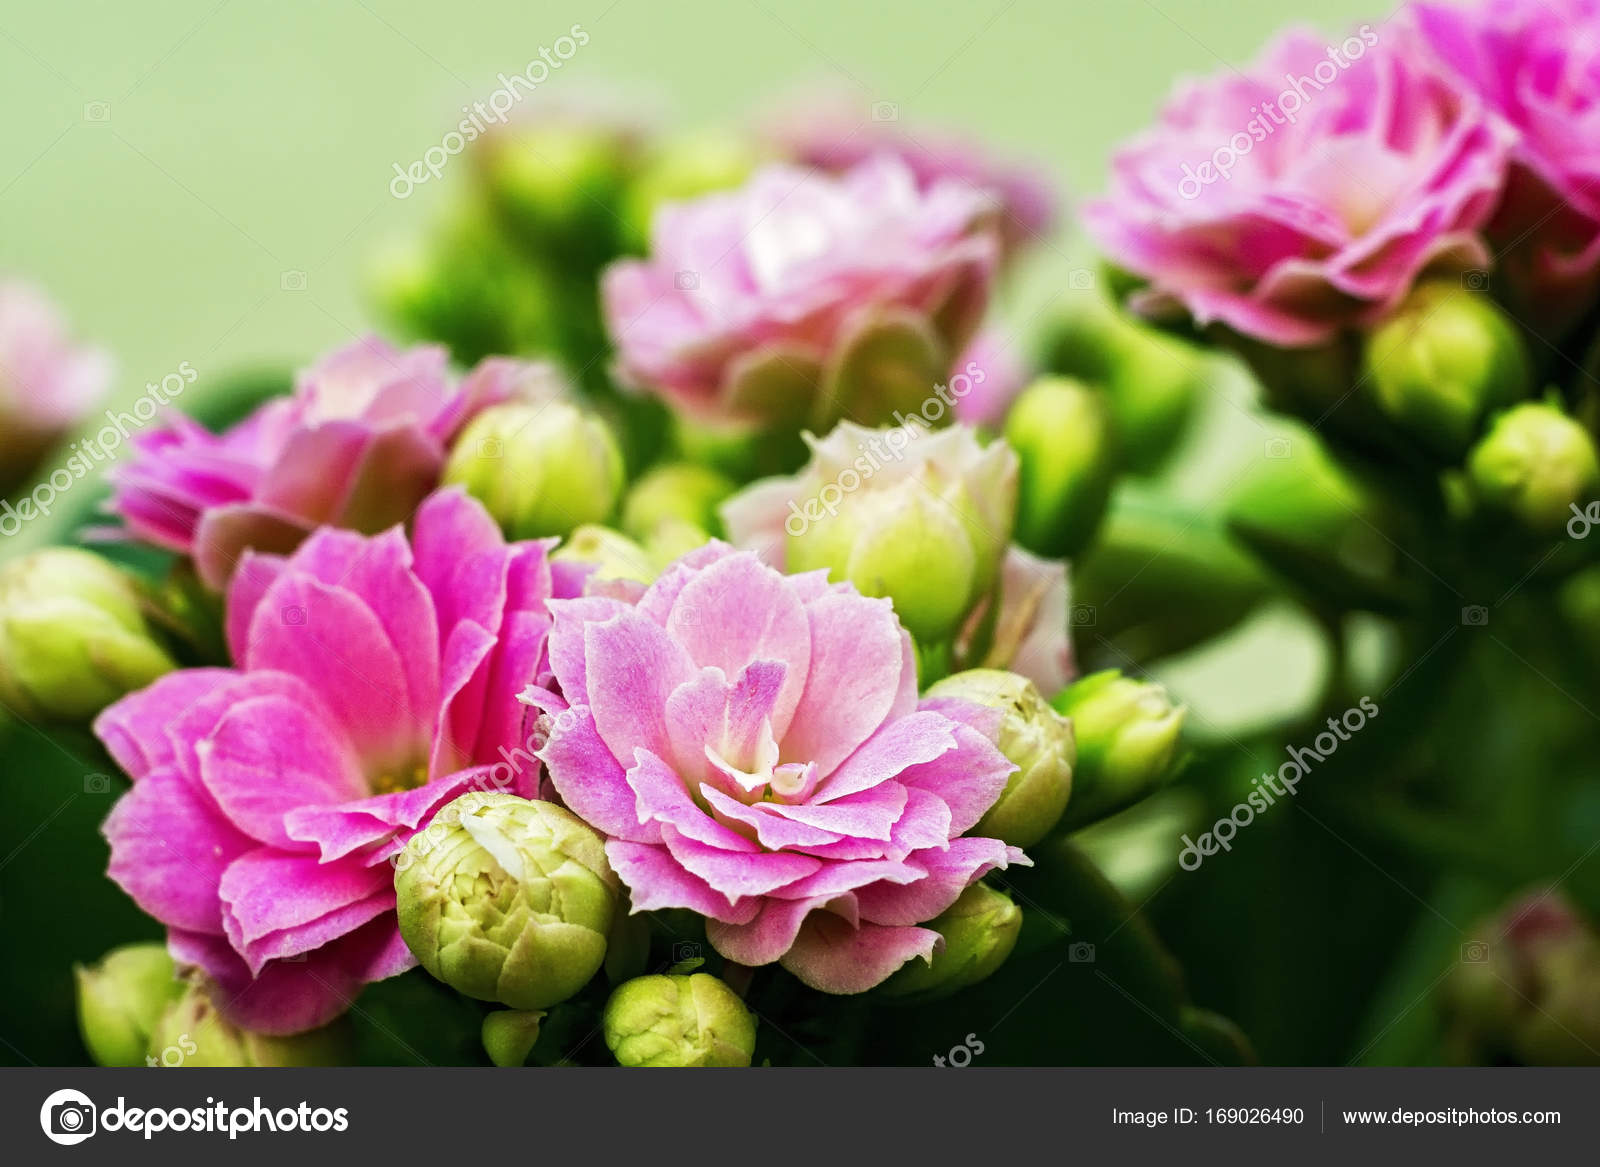 White Pink Flowers Of Kalanchoe Kind Of Succulent Plant Family T